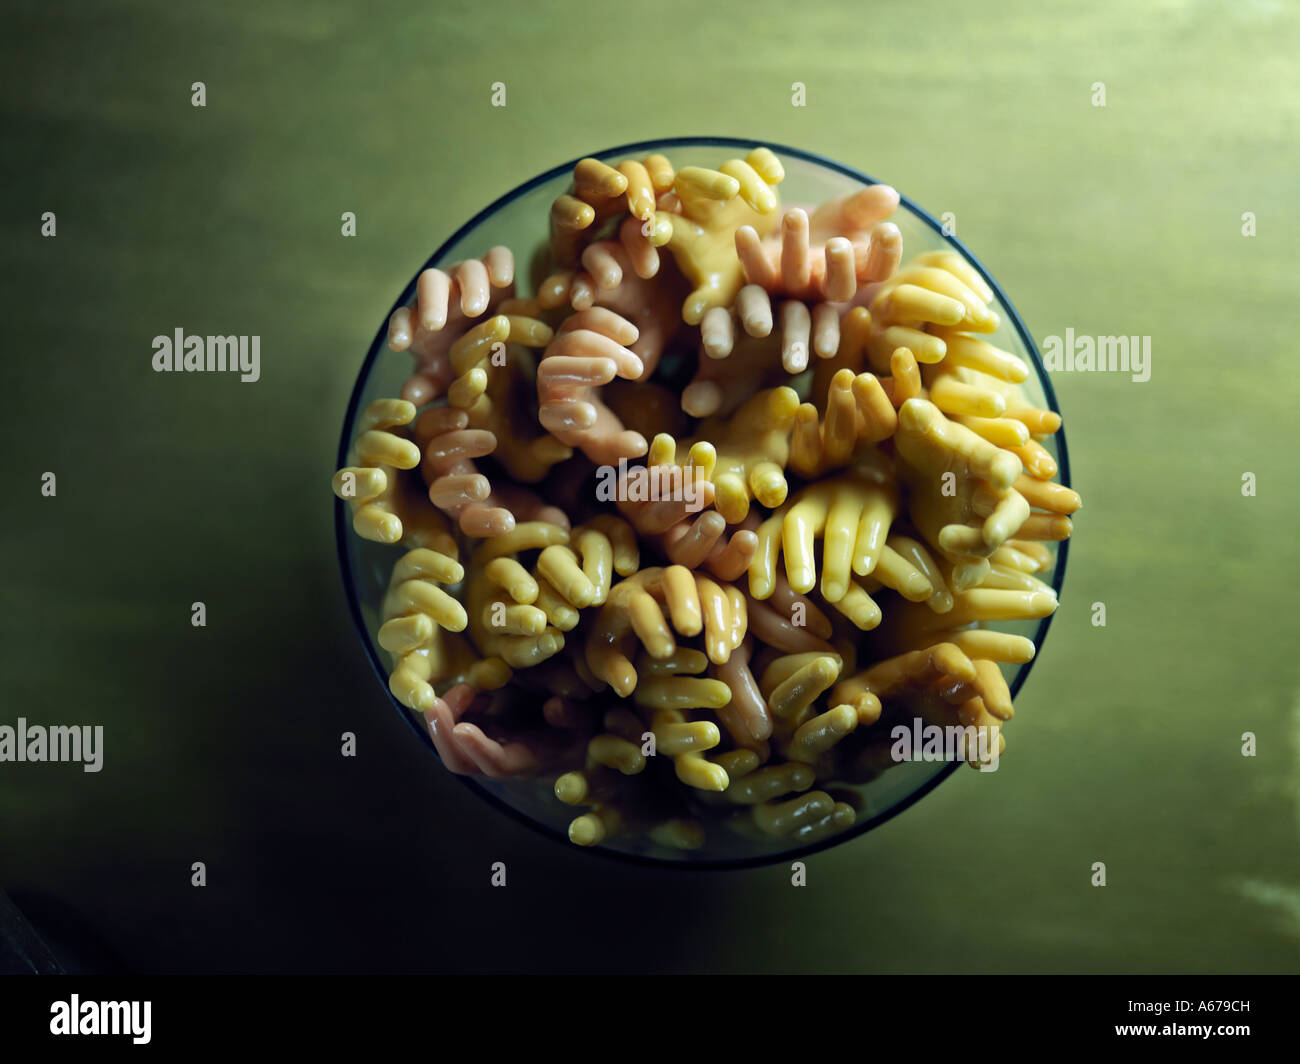 hands in bowl - Stock Image